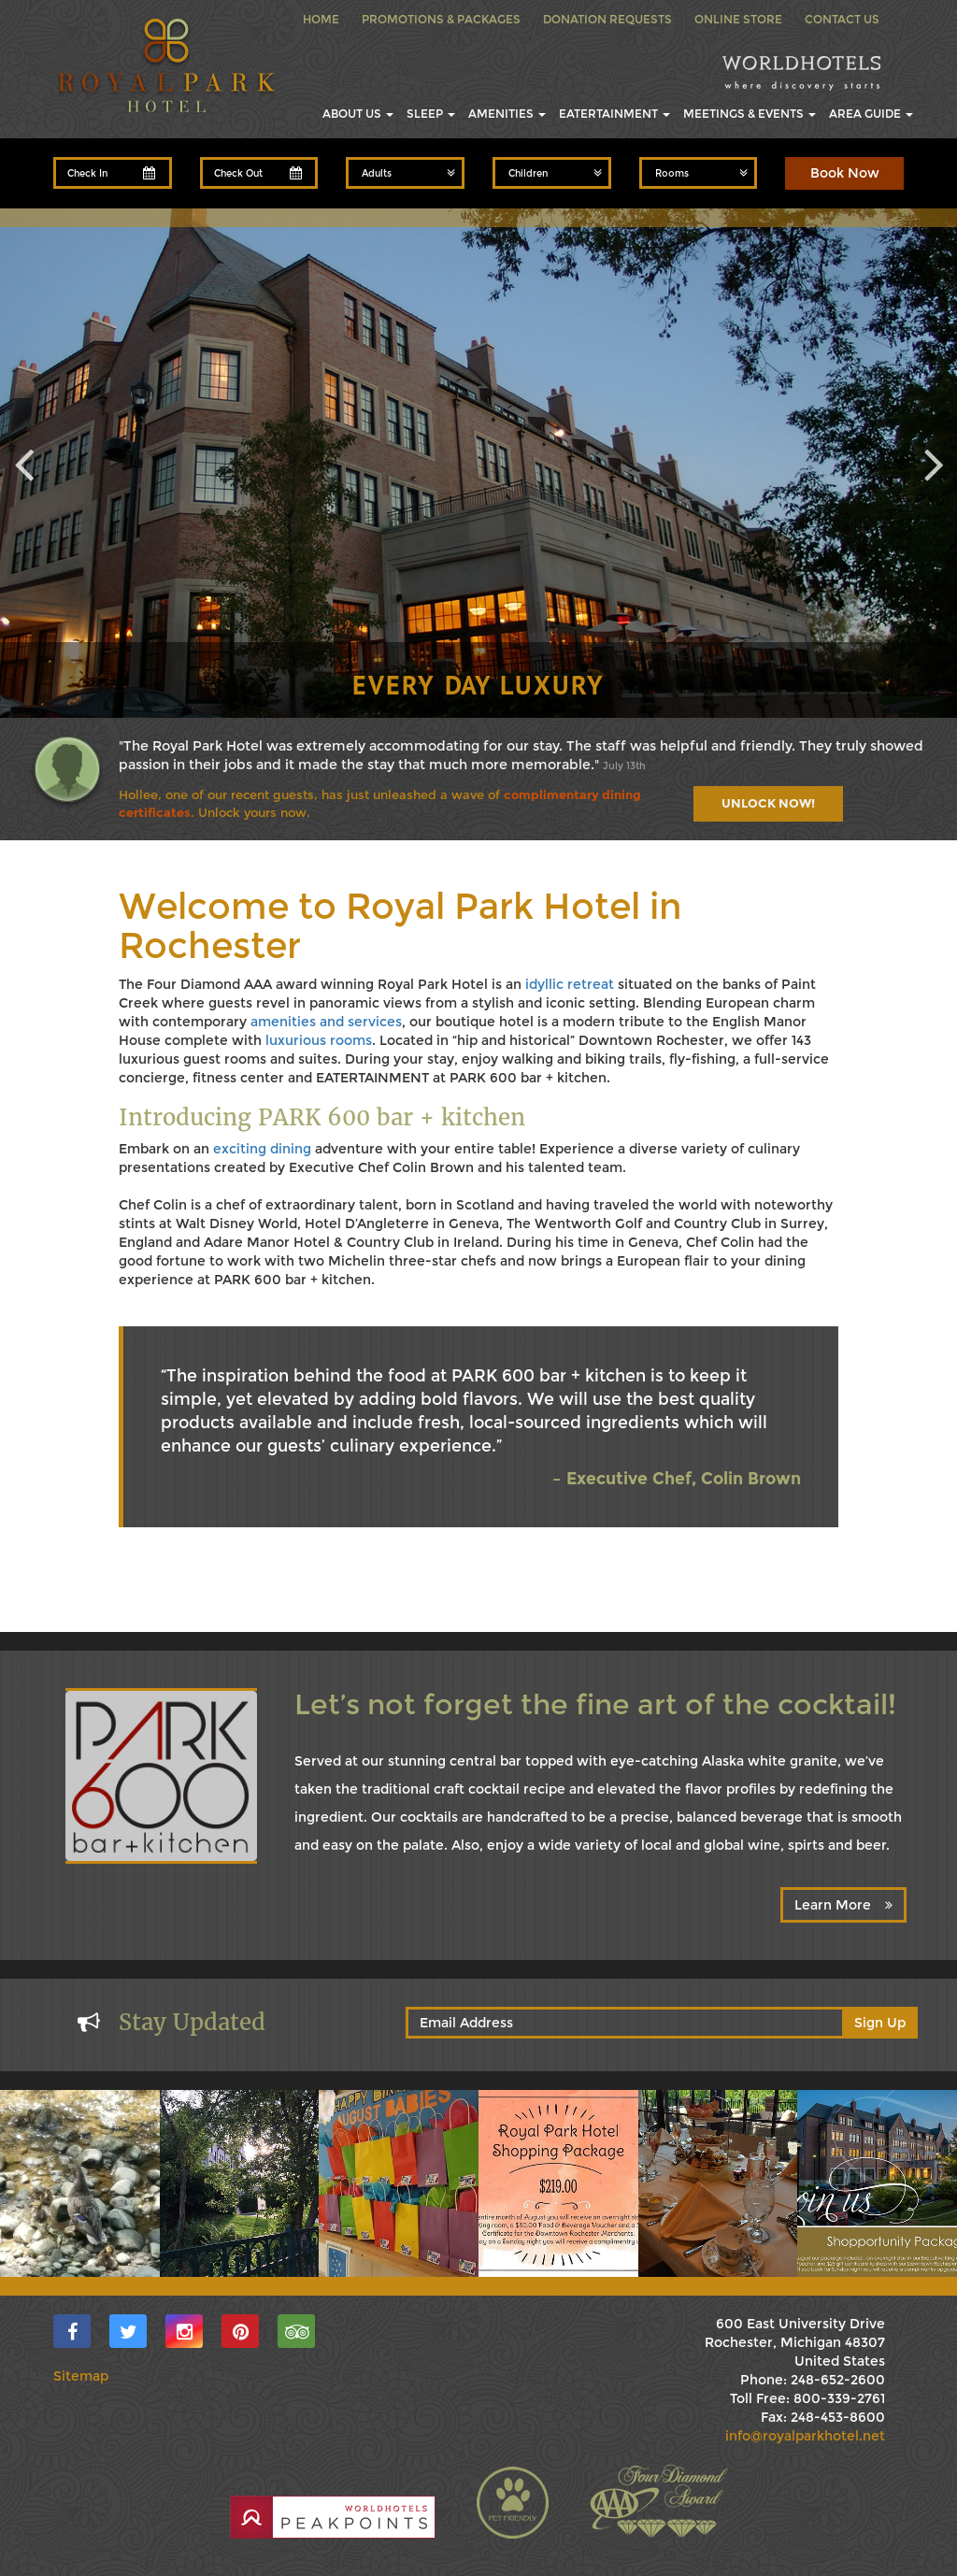 Royal Park Hotel S Competitors Revenue Number Of Employees Funding Acquisitions News Owler Company Profile